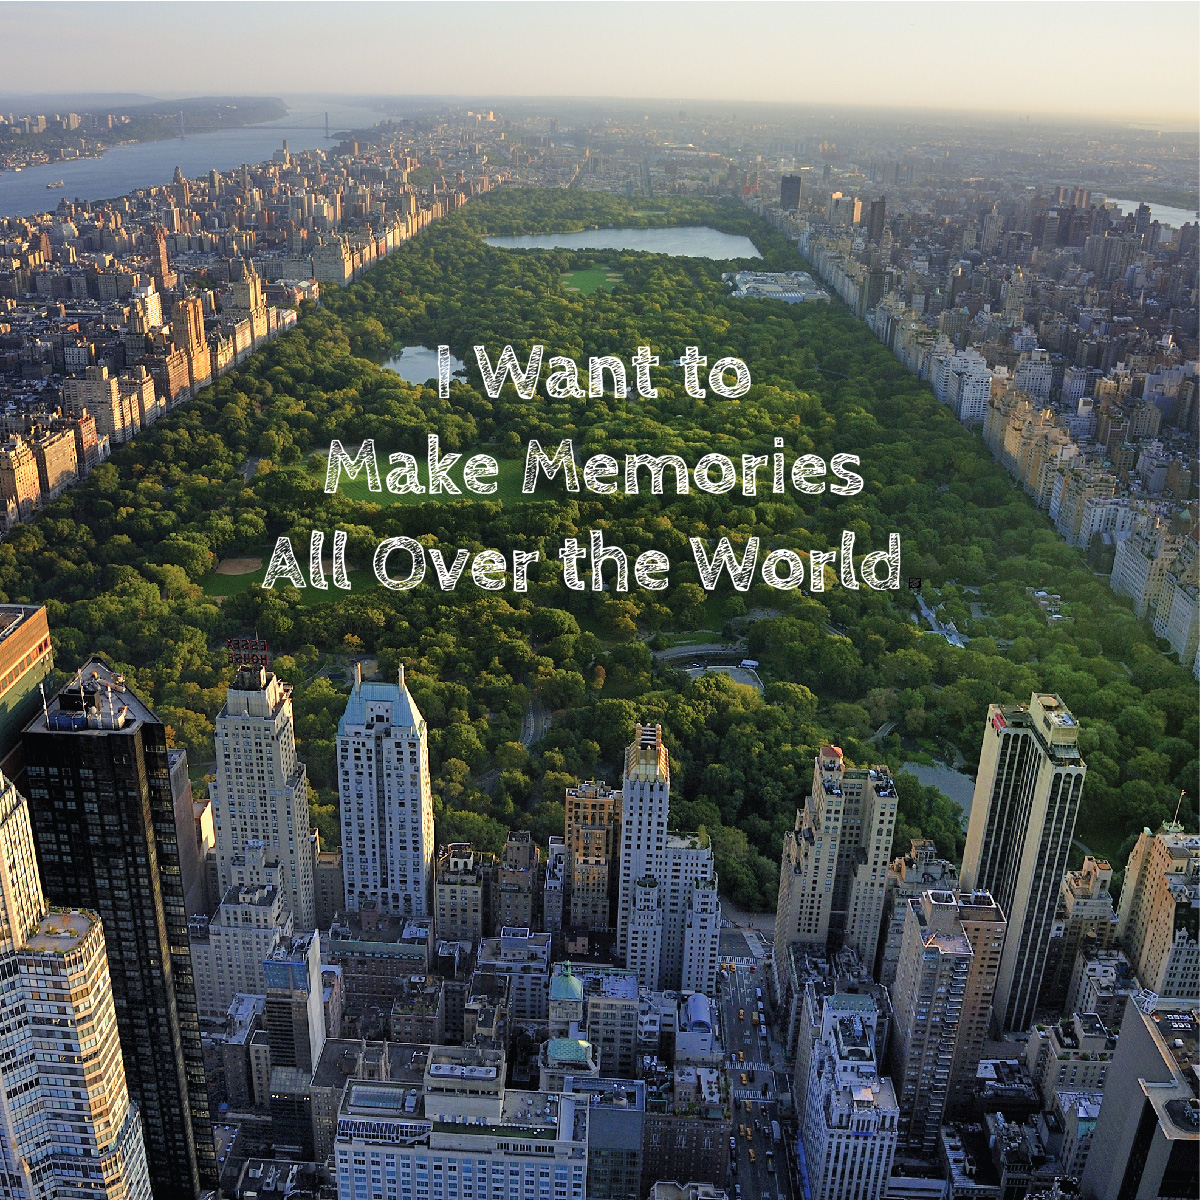 Travel Quote: I want to make memories all over the world